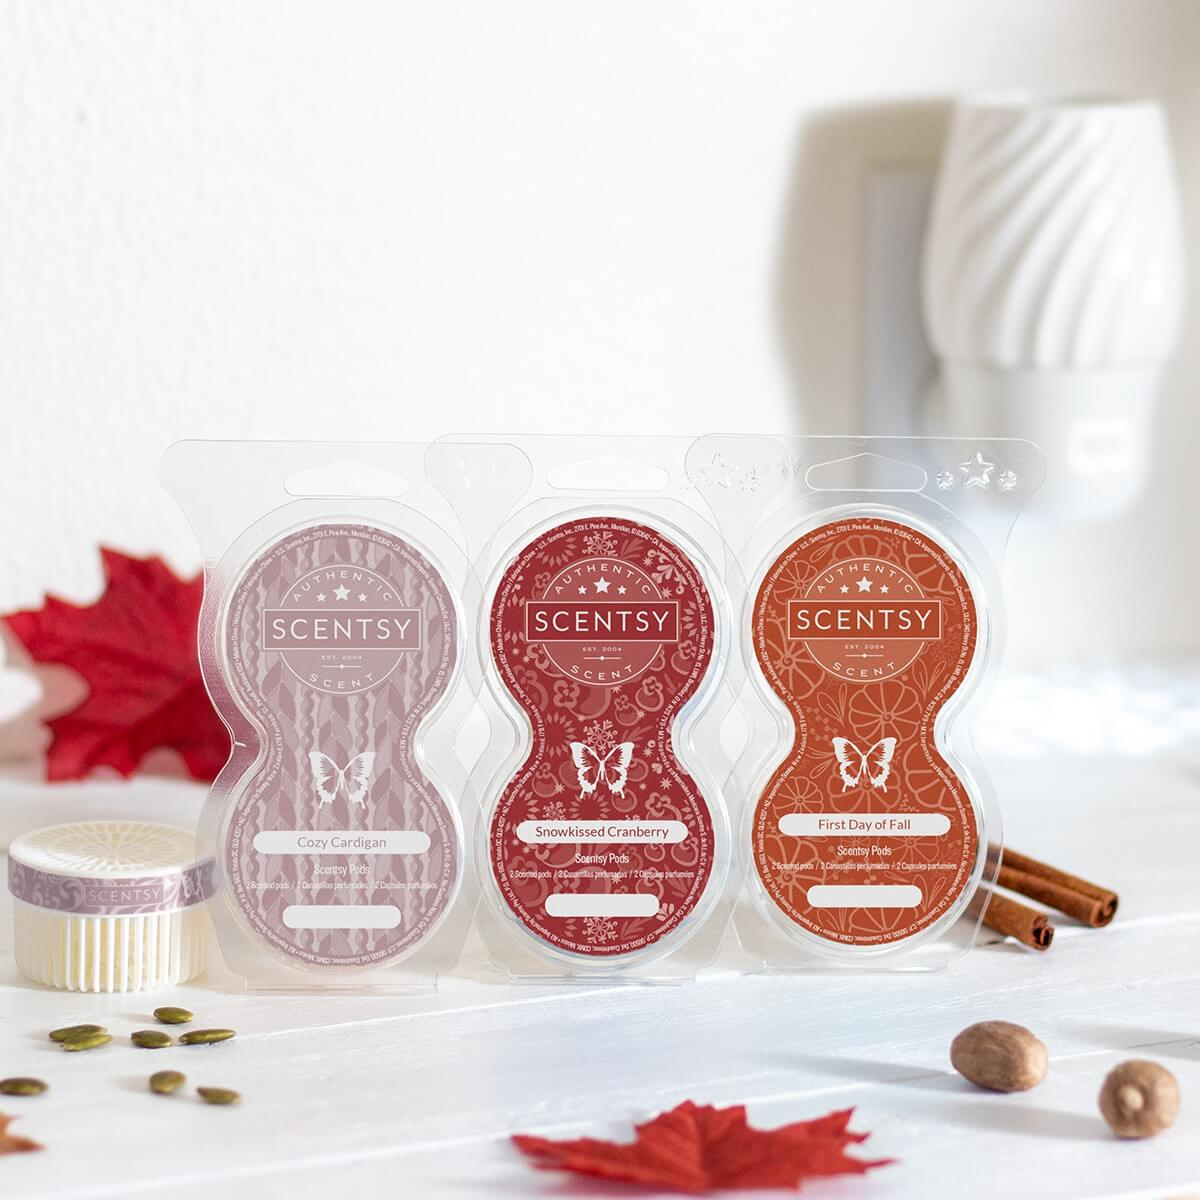 Our three newest Scentsy Pods -- For use in the Scentsy Go, Wall Fan Diffusers, or Mini Fan Diffuser  Cozy Cardigan, Snowkissed Cranberry, and First Day of Fall.   More Info:  https://soo.nr/AMsb   #InstantFragrance #Scentsy #Fall #Cozy #SweaterWeather #AutumnMood pic.twitter.com/FpzC5K5aP3